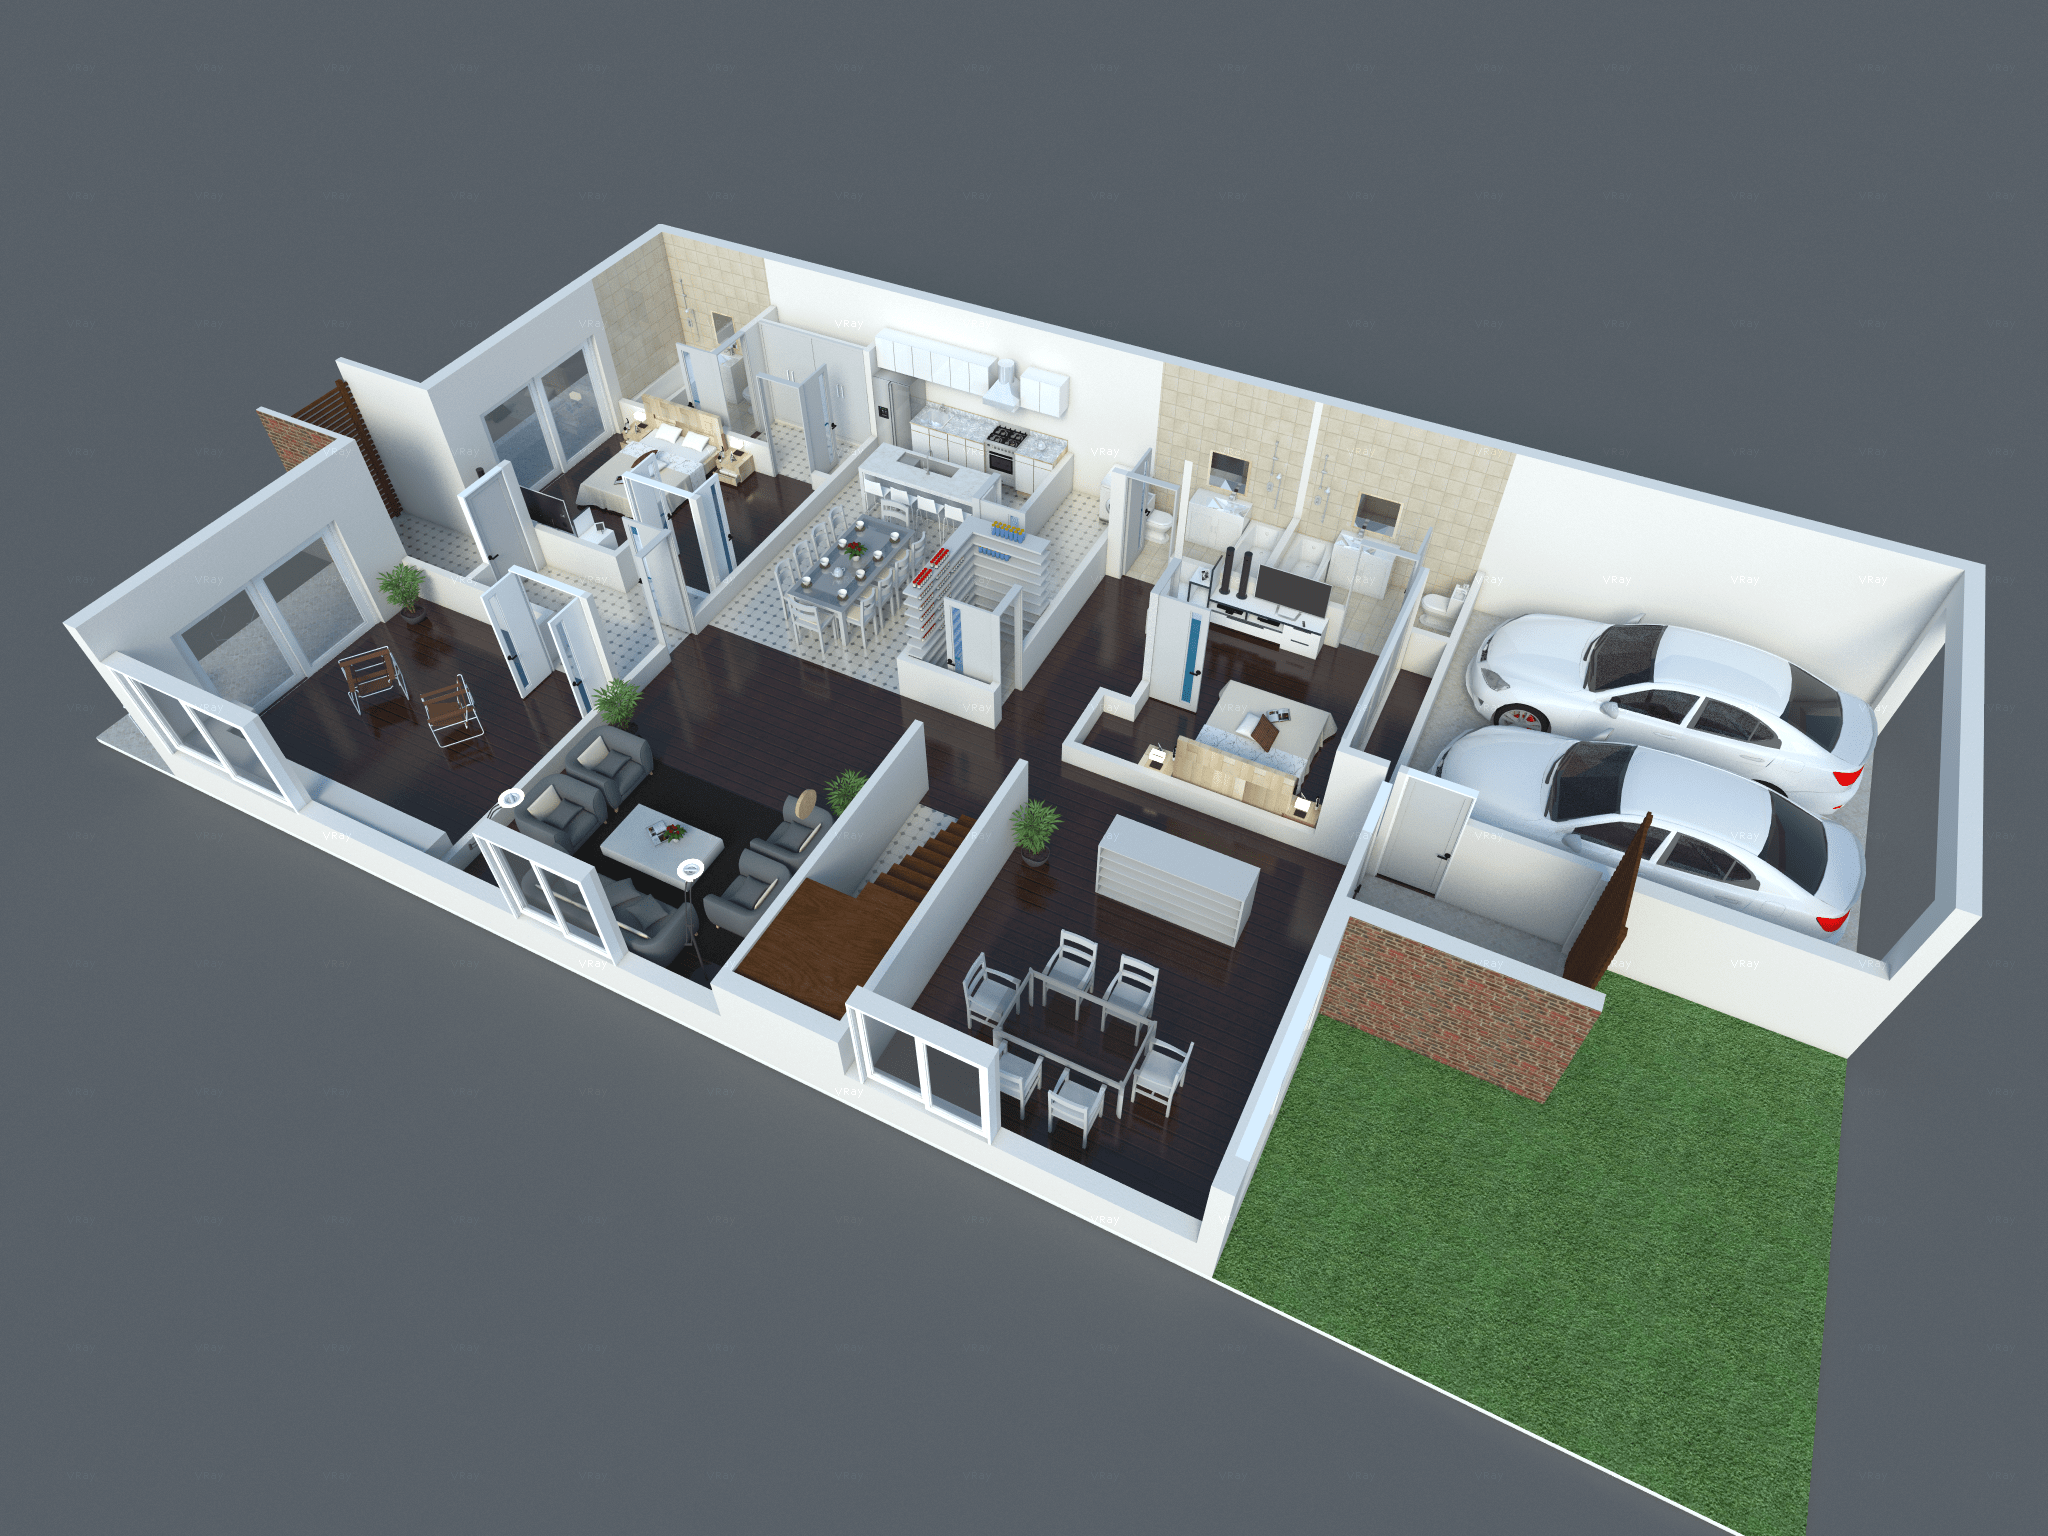 Sketchup 3d Floor Plan Google Search Interior Design